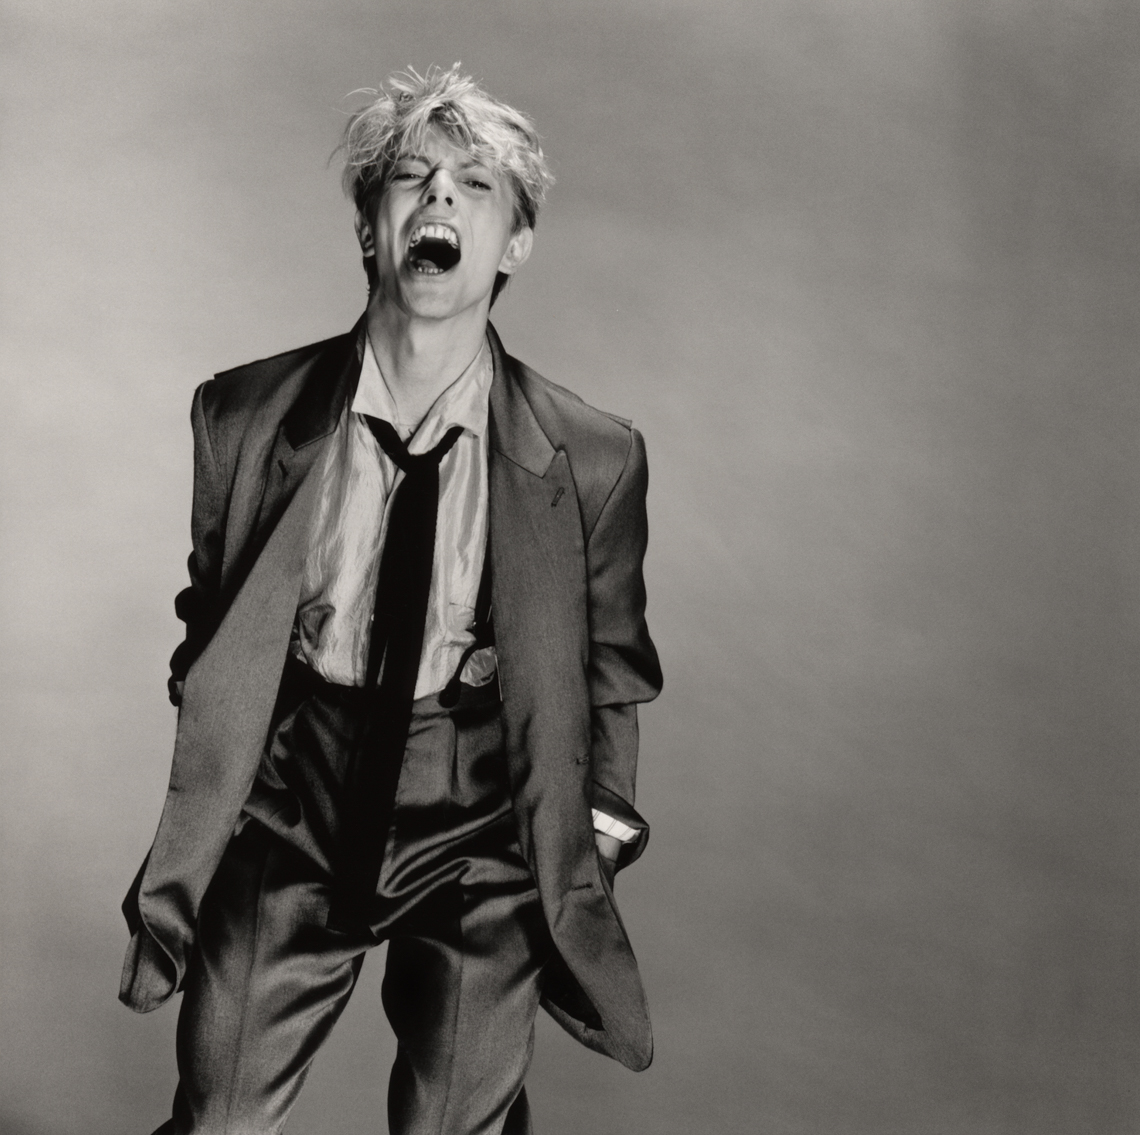 181._David_Bowie_screaming.tif